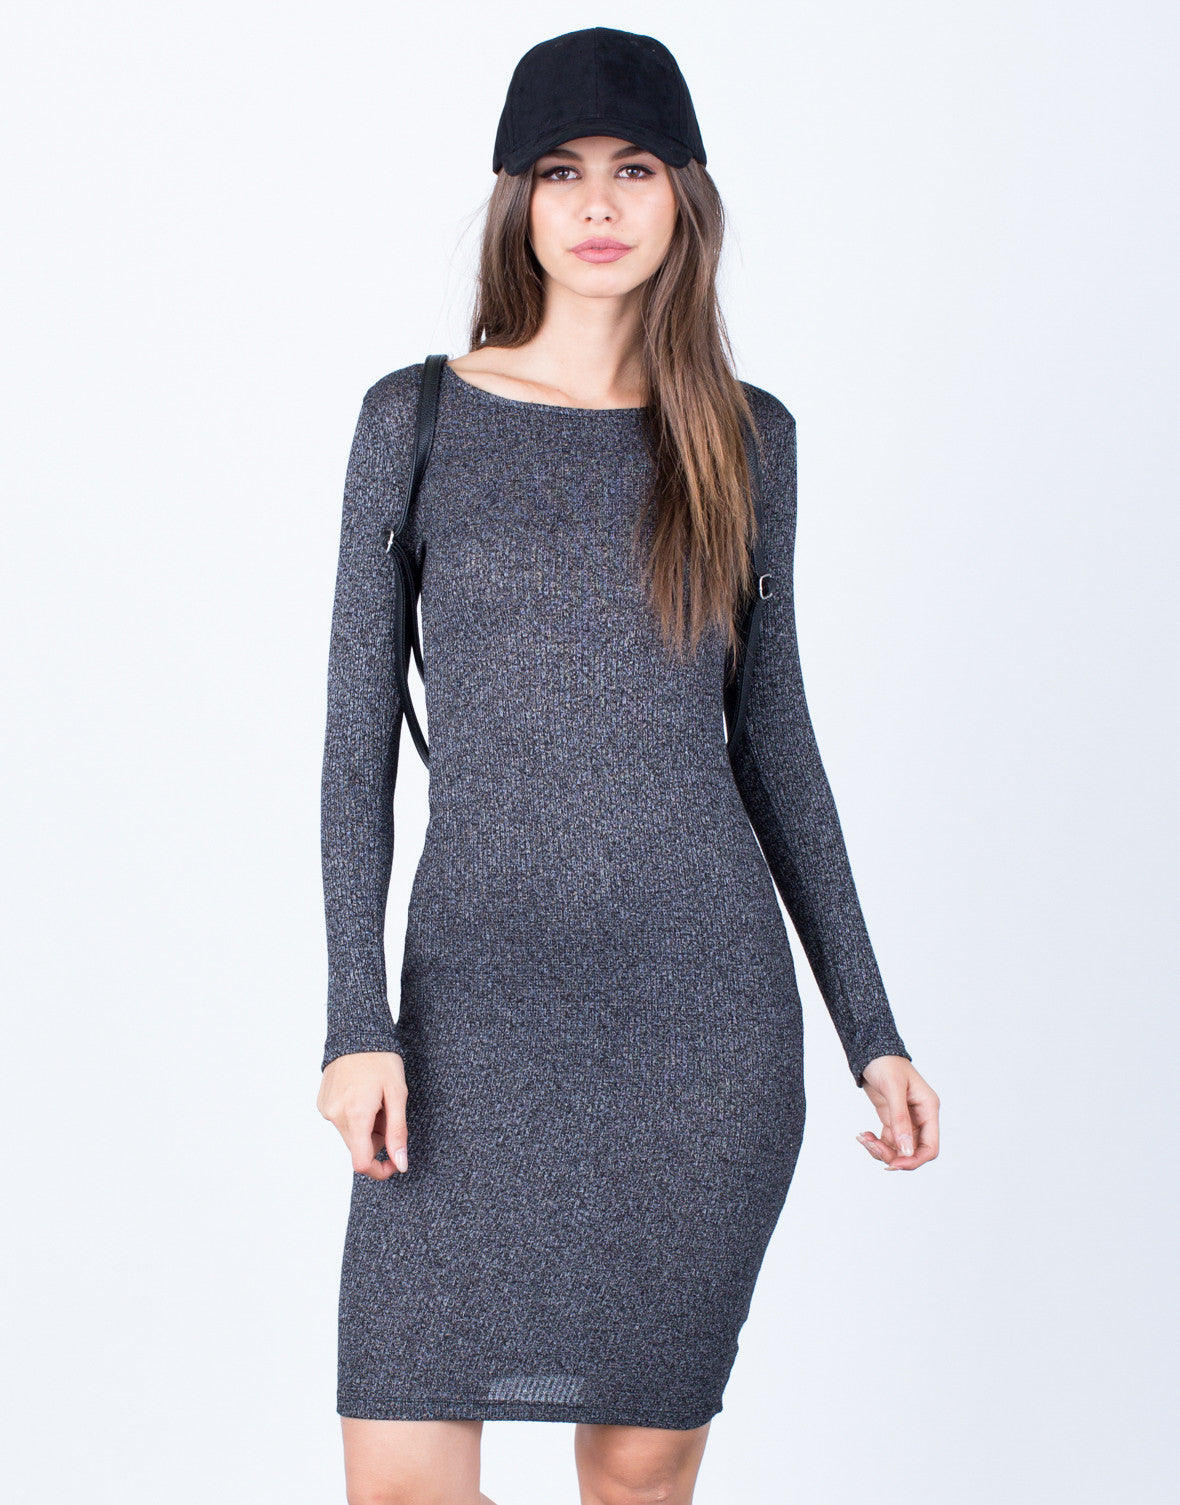 Highpoint shopping casual bodycon dress outfit wholesale los angeles